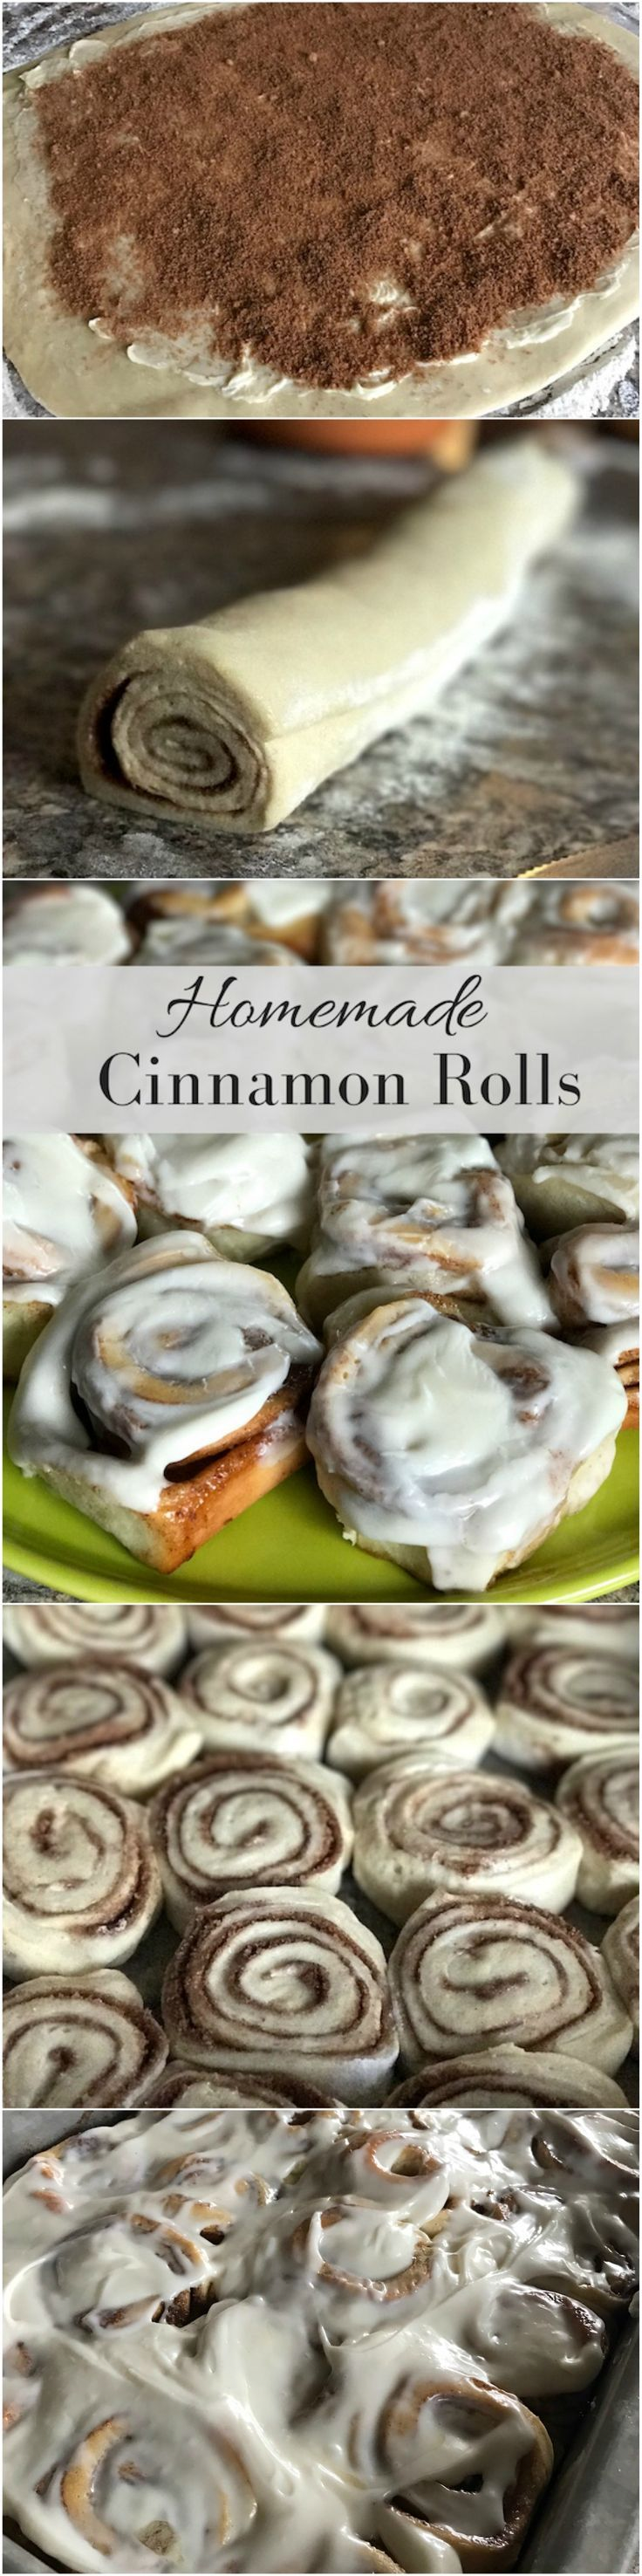 These cinnamon rolls are delicious! It even includes cream cheese icing. It's perfect for brunch, Easter, breakfast, and so many more occasions!